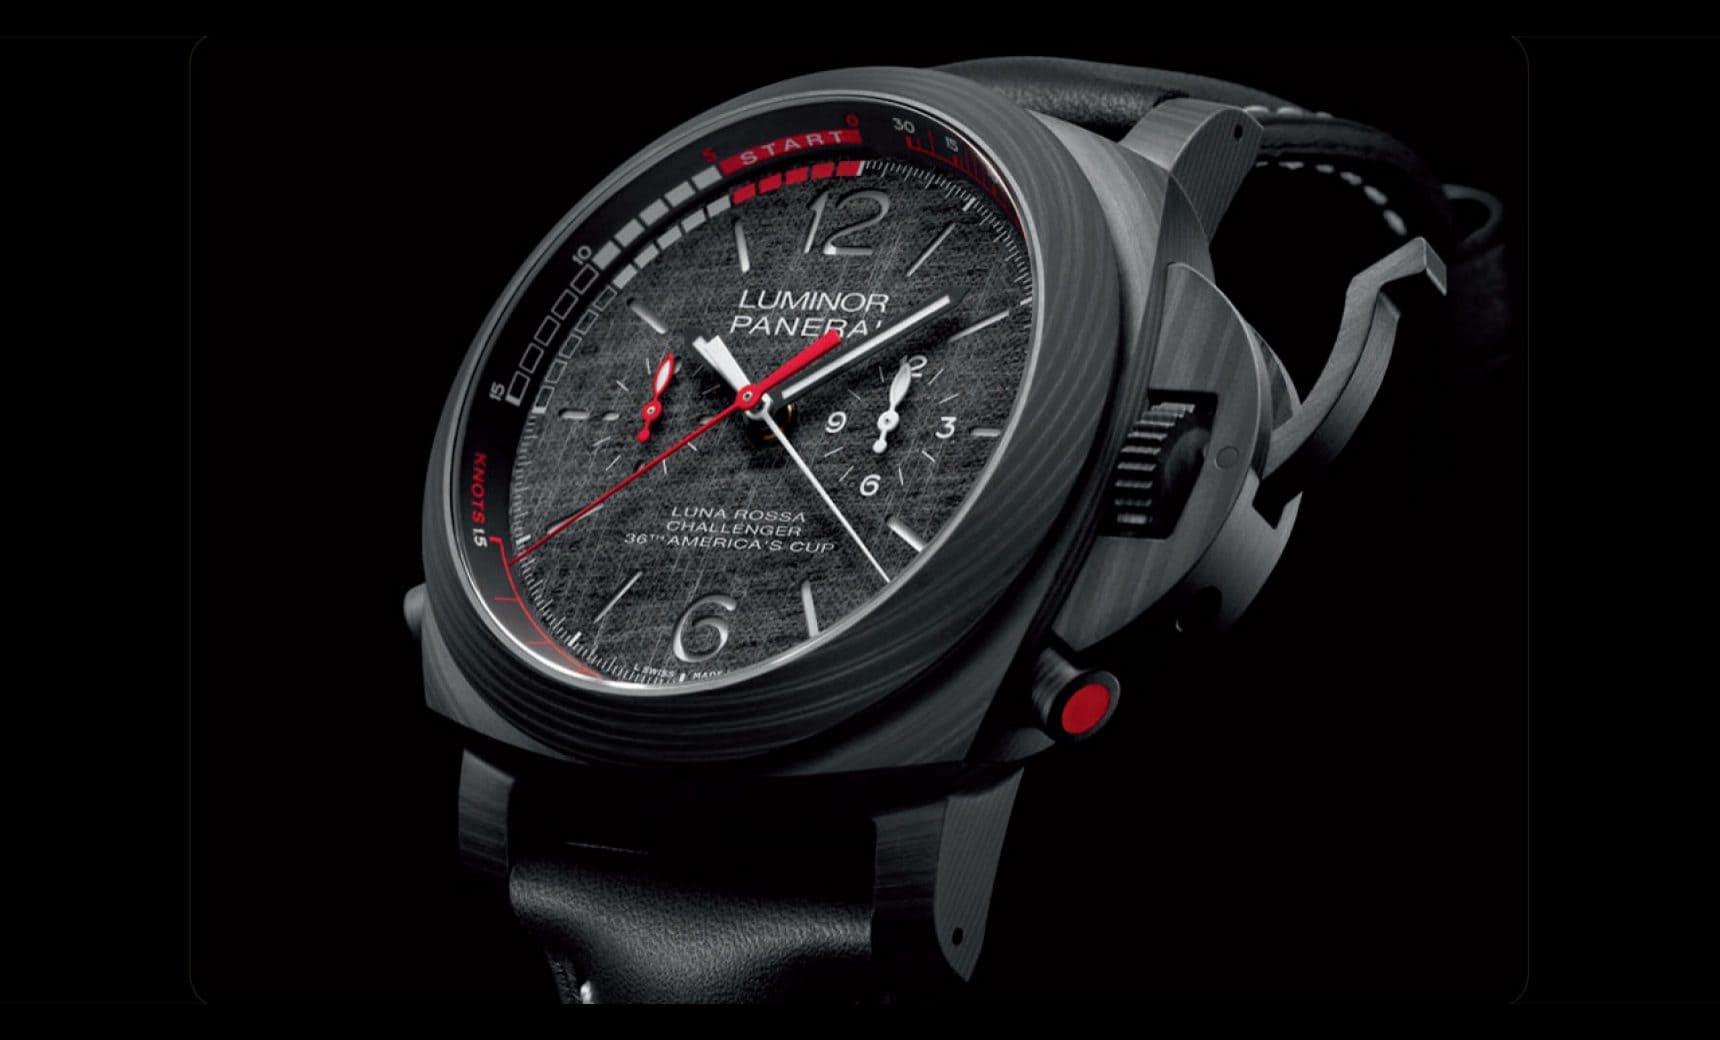 PANERAI LUMINOR LUNA ROSSA. AUTHENTICITY AND IDENTITY. COMPACT, HIGH PERFORMANCE, DOMINANT.